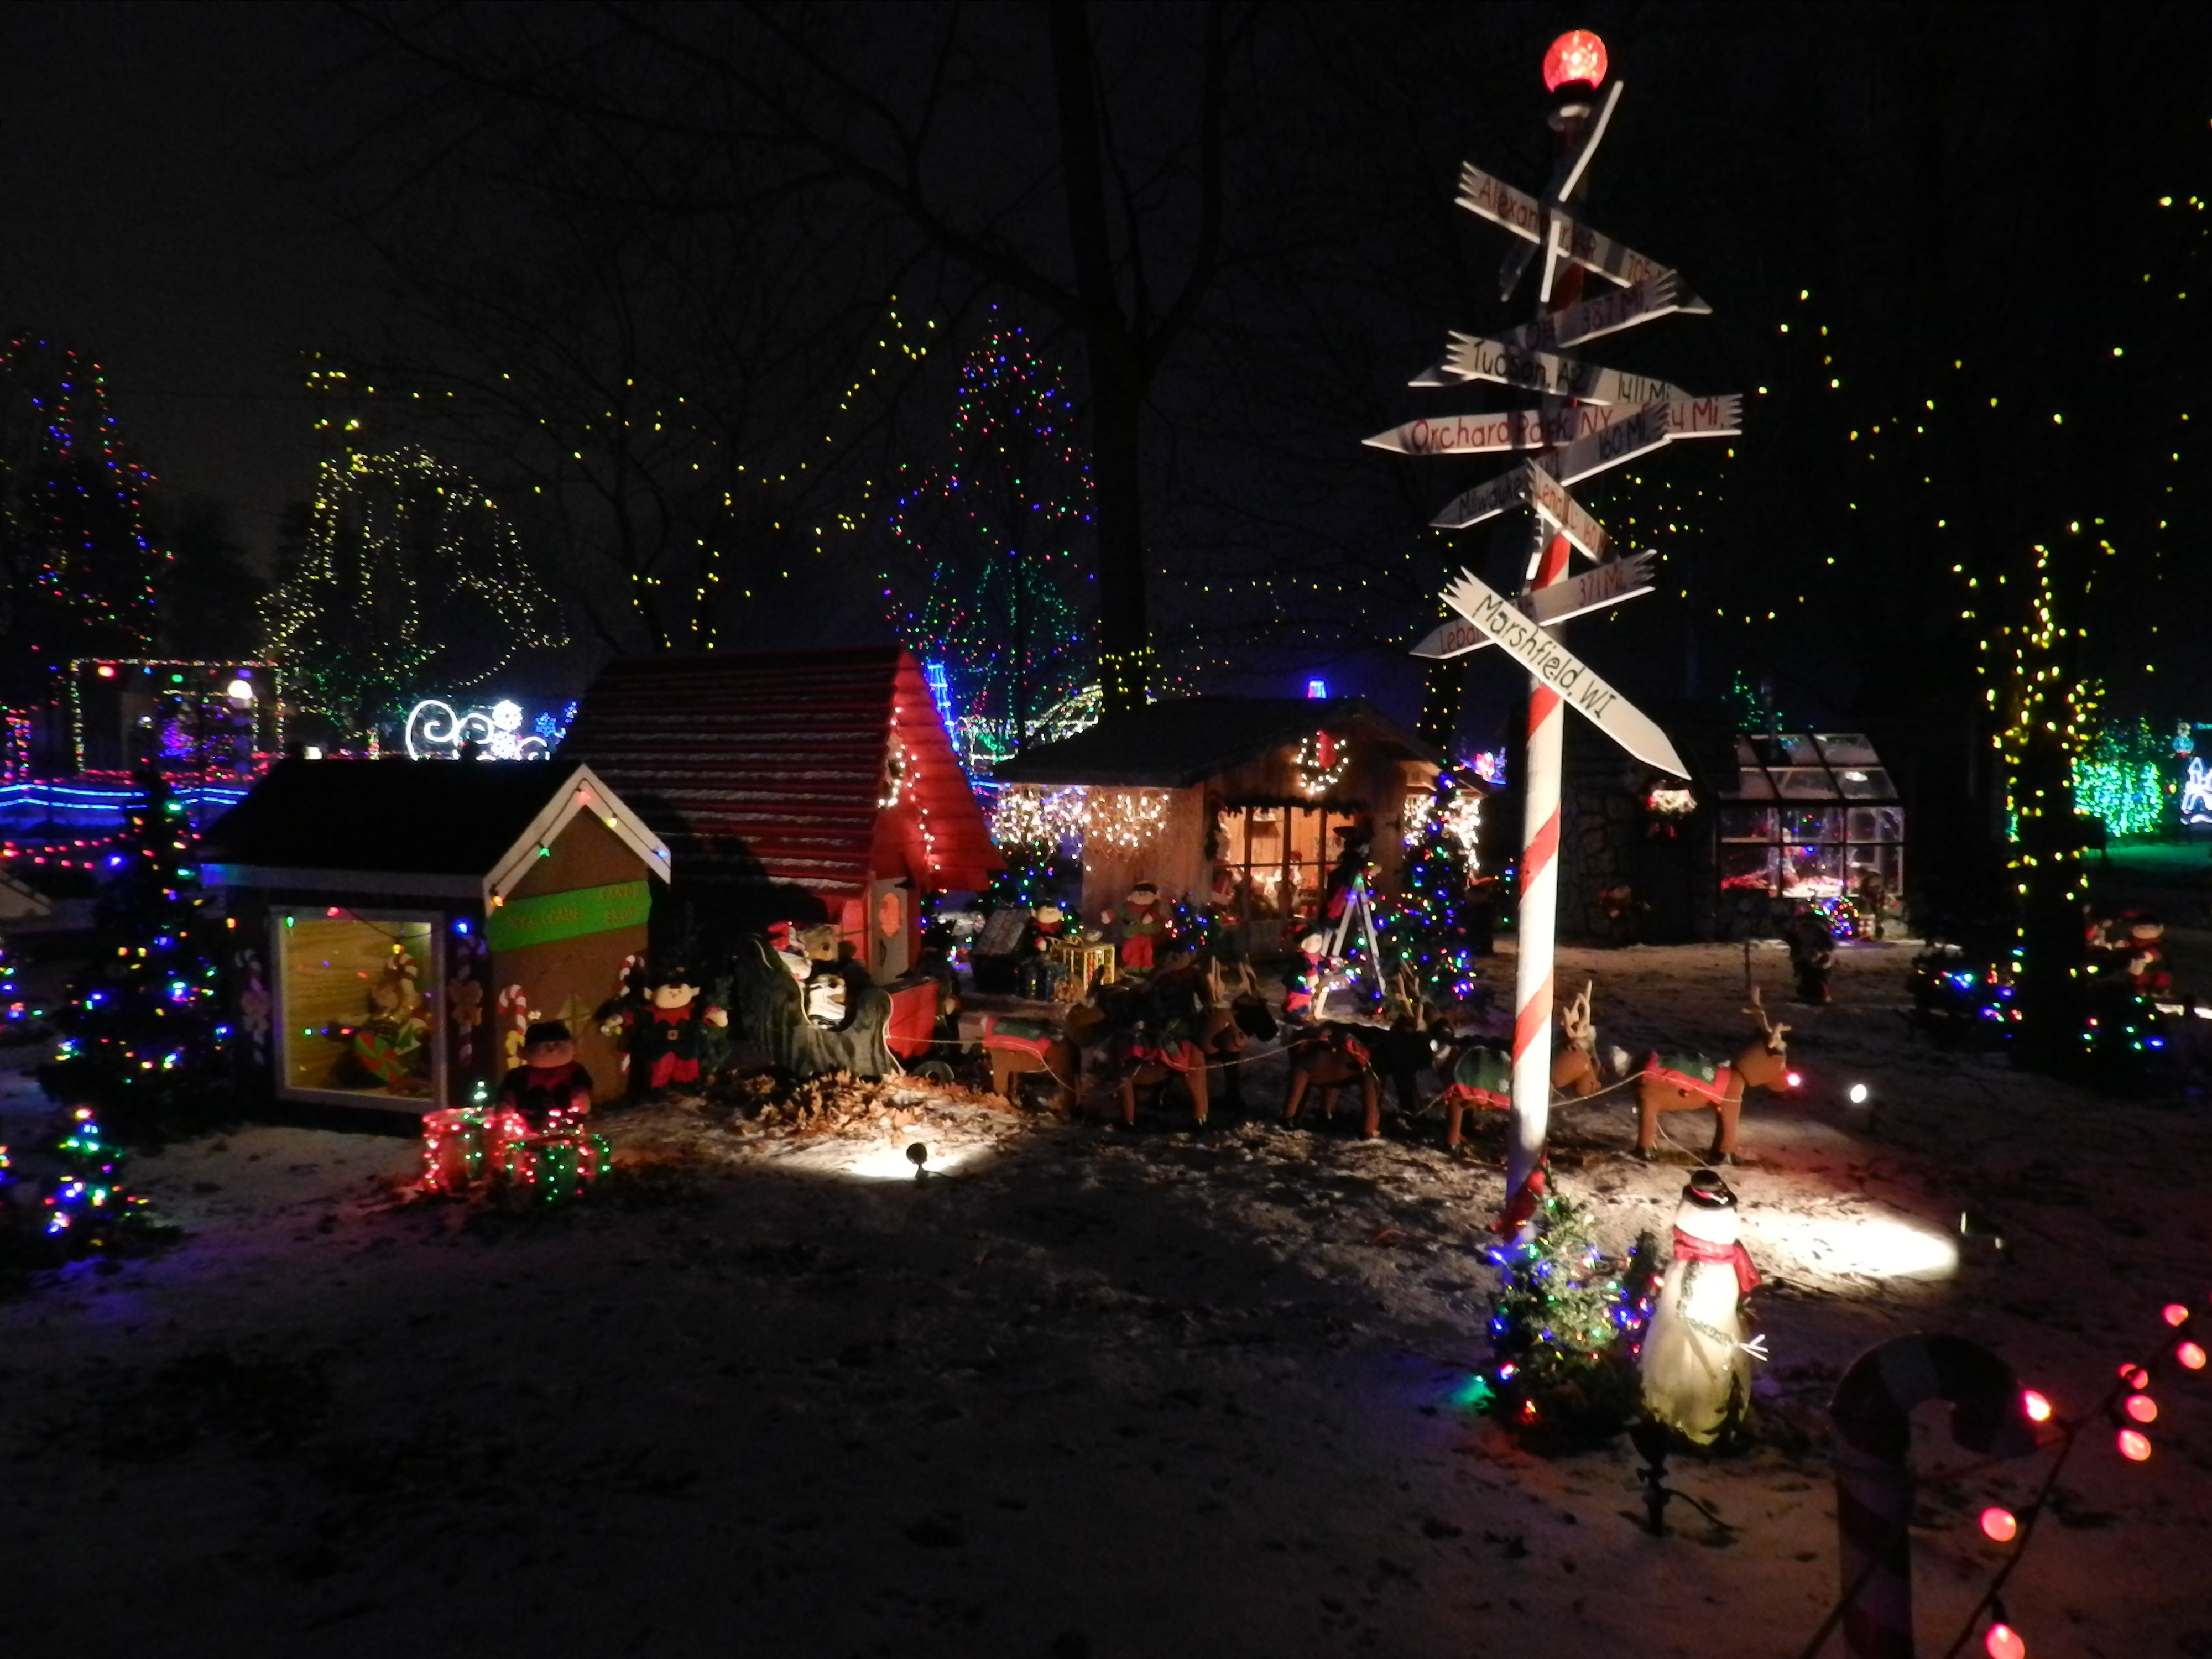 20 Creative Holiday Photo Ideas - Marshfield WI Lights Display via Discover Wisconsin | https://www.roseclearfield.com